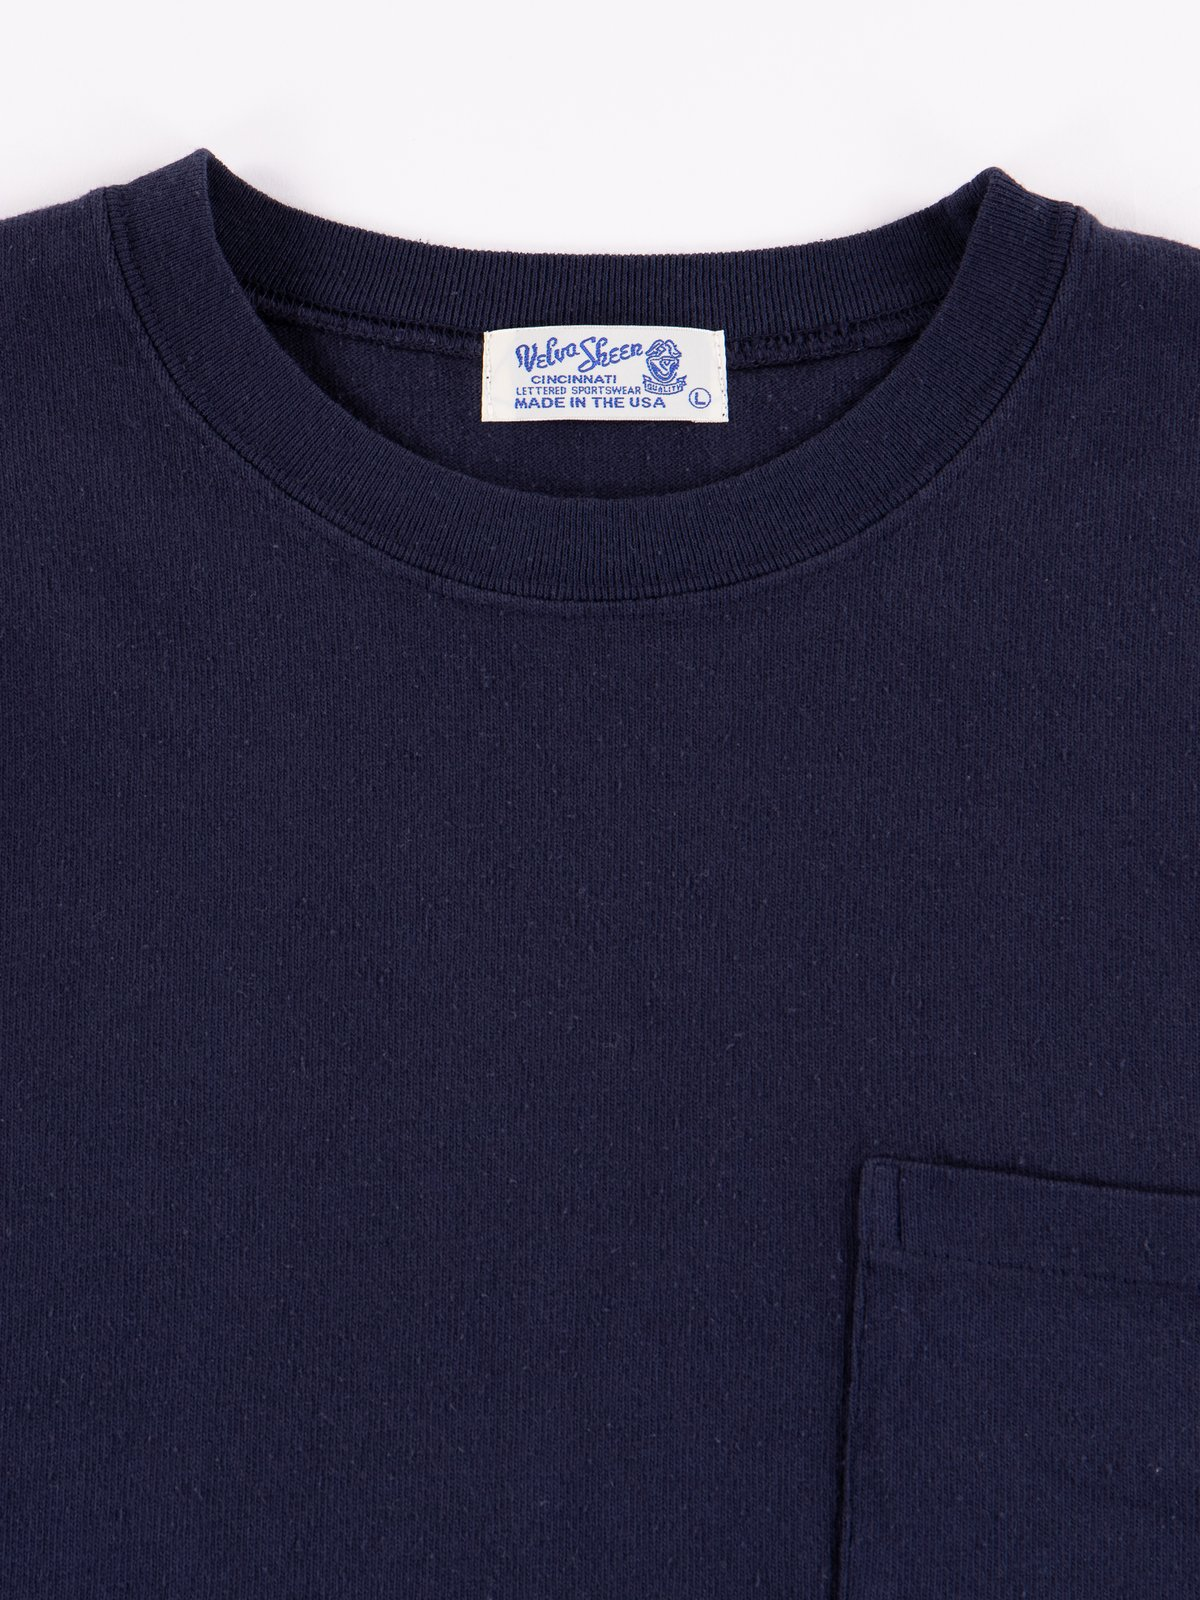 Navy Heavy Oz Pocket Tee - Image 2